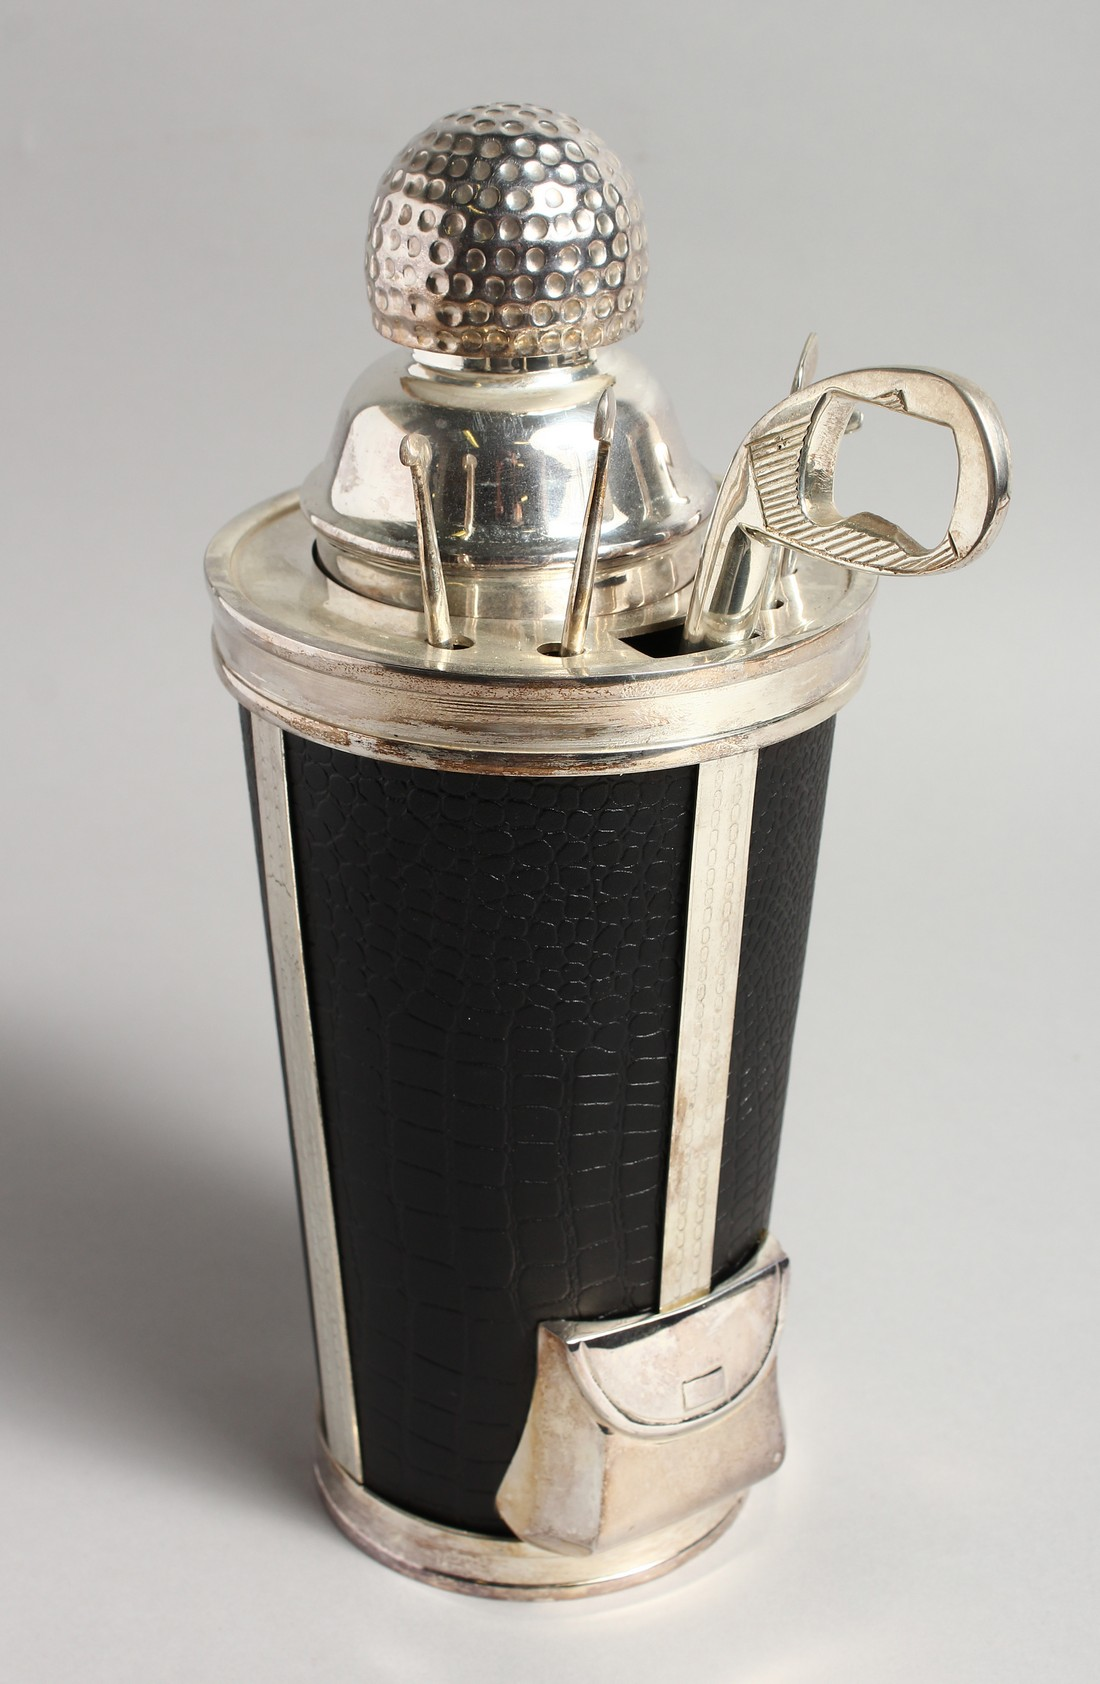 A SILVER PLATE AND LEATHER COVERED GOLF BAG COCKTAIL SHAKER with carrying handle. 11.5ins high.